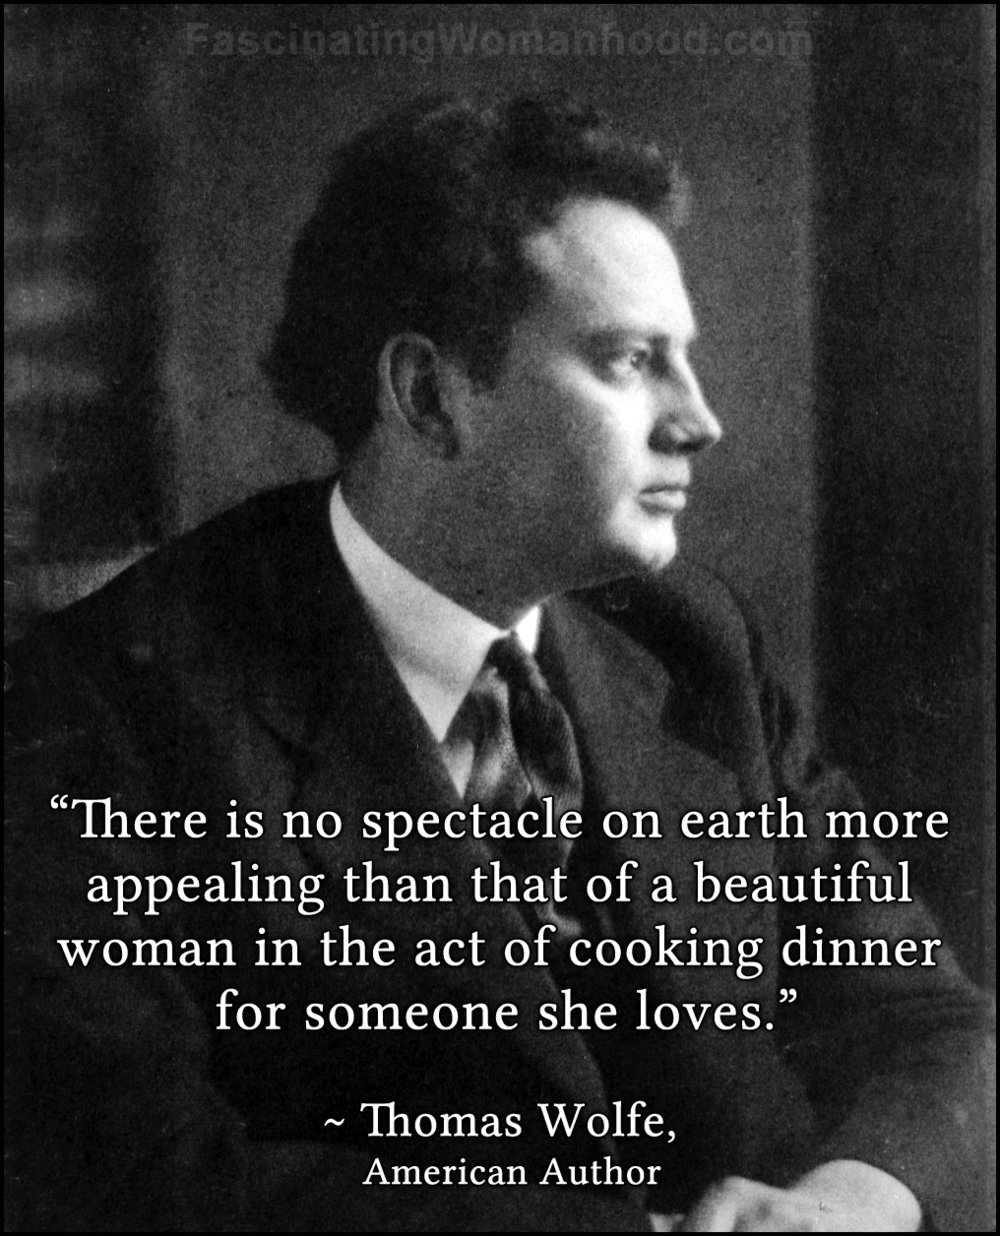 A Quote by Thomas Wolfe.jpg